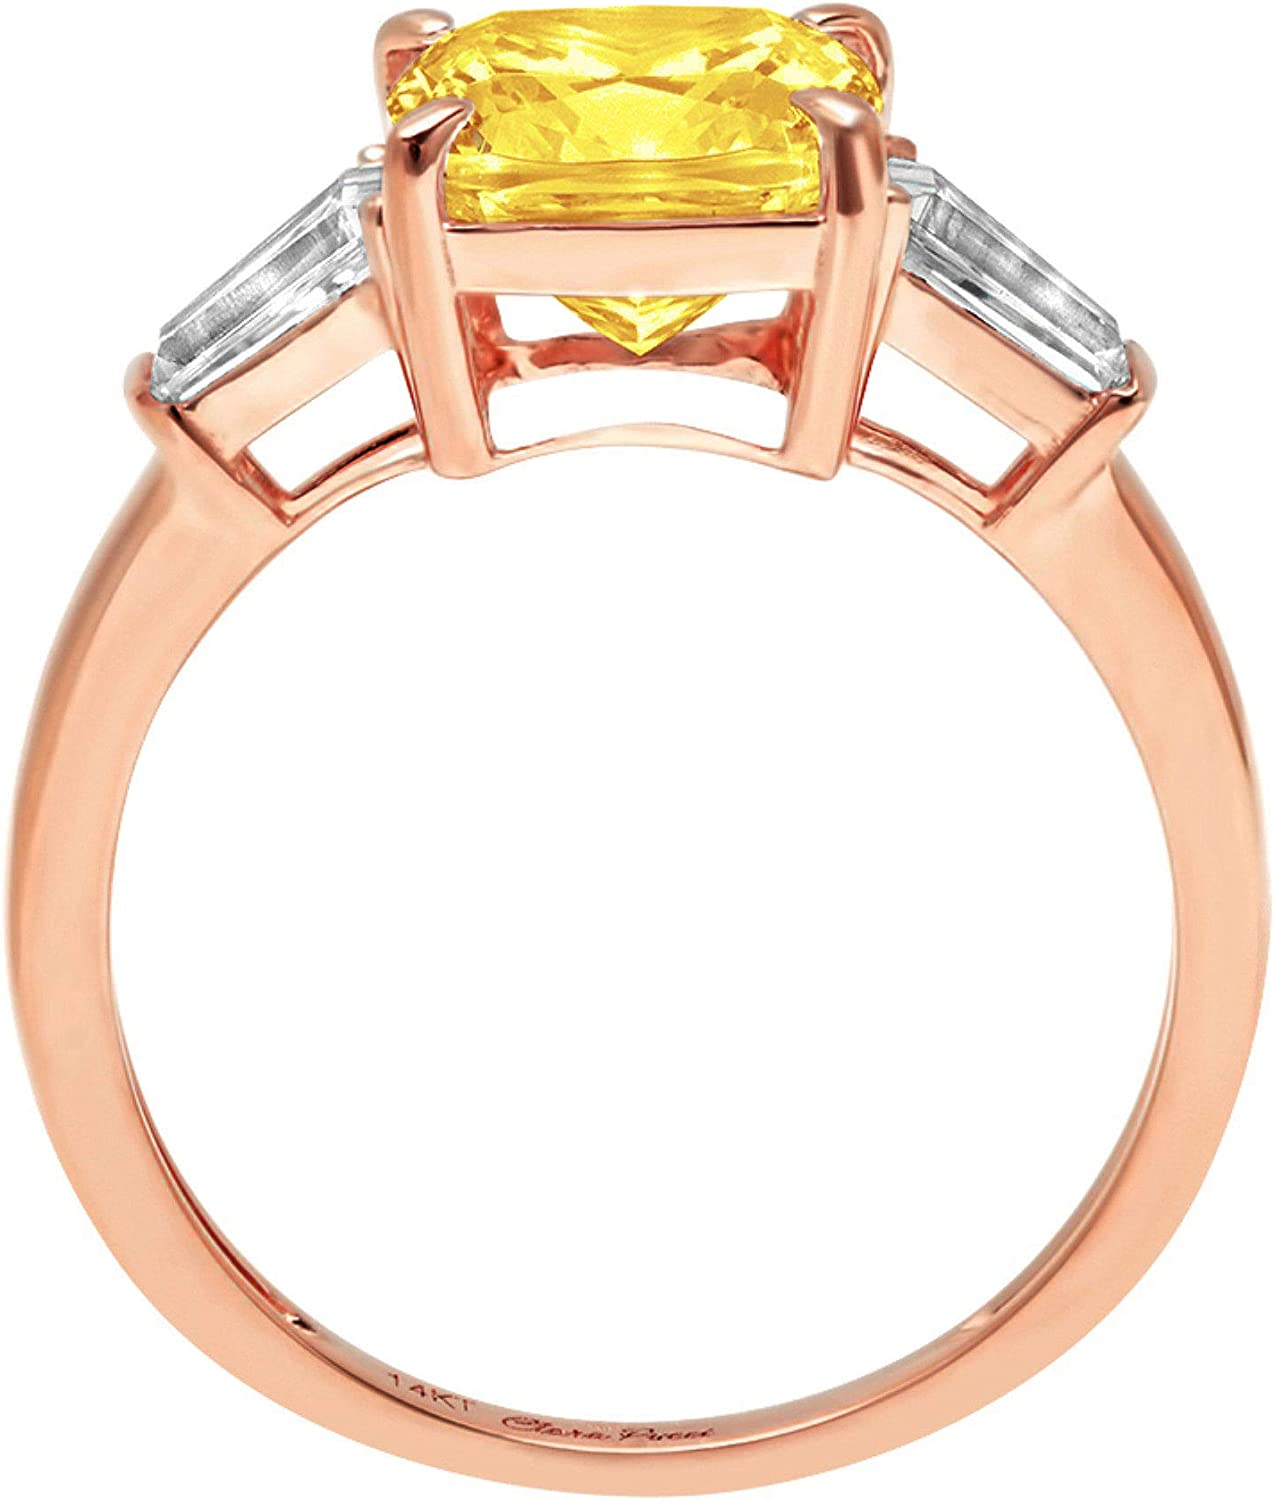 3.44ct Cushion Baguette cut 3 stone Solitaire with Accent Canary Yellow Ideal VVS1 Simulated Diamond CZ Engagement Promise Statement Anniversary Bridal Wedding Ring 14k Rose Gold